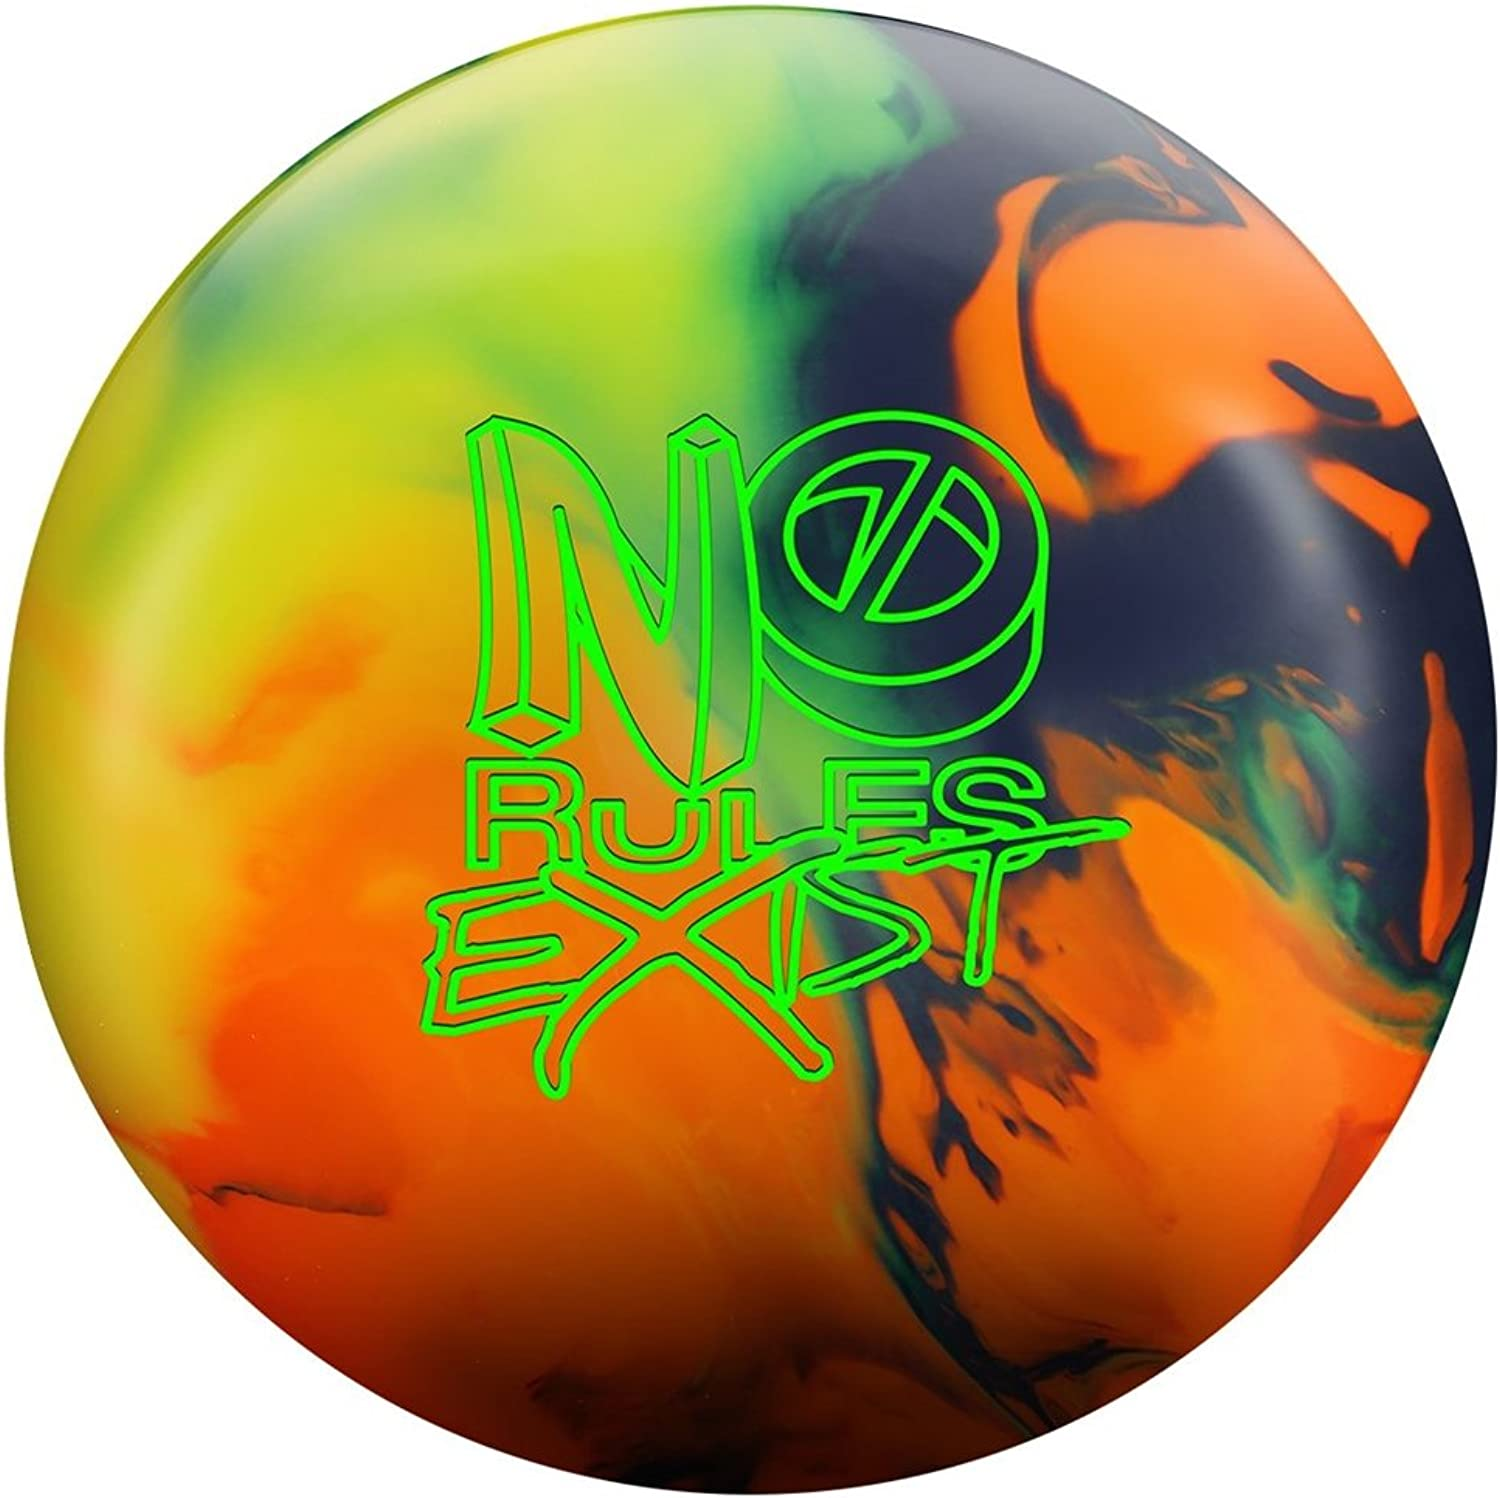 Redo Grip No Rules Exist Bowling Ball